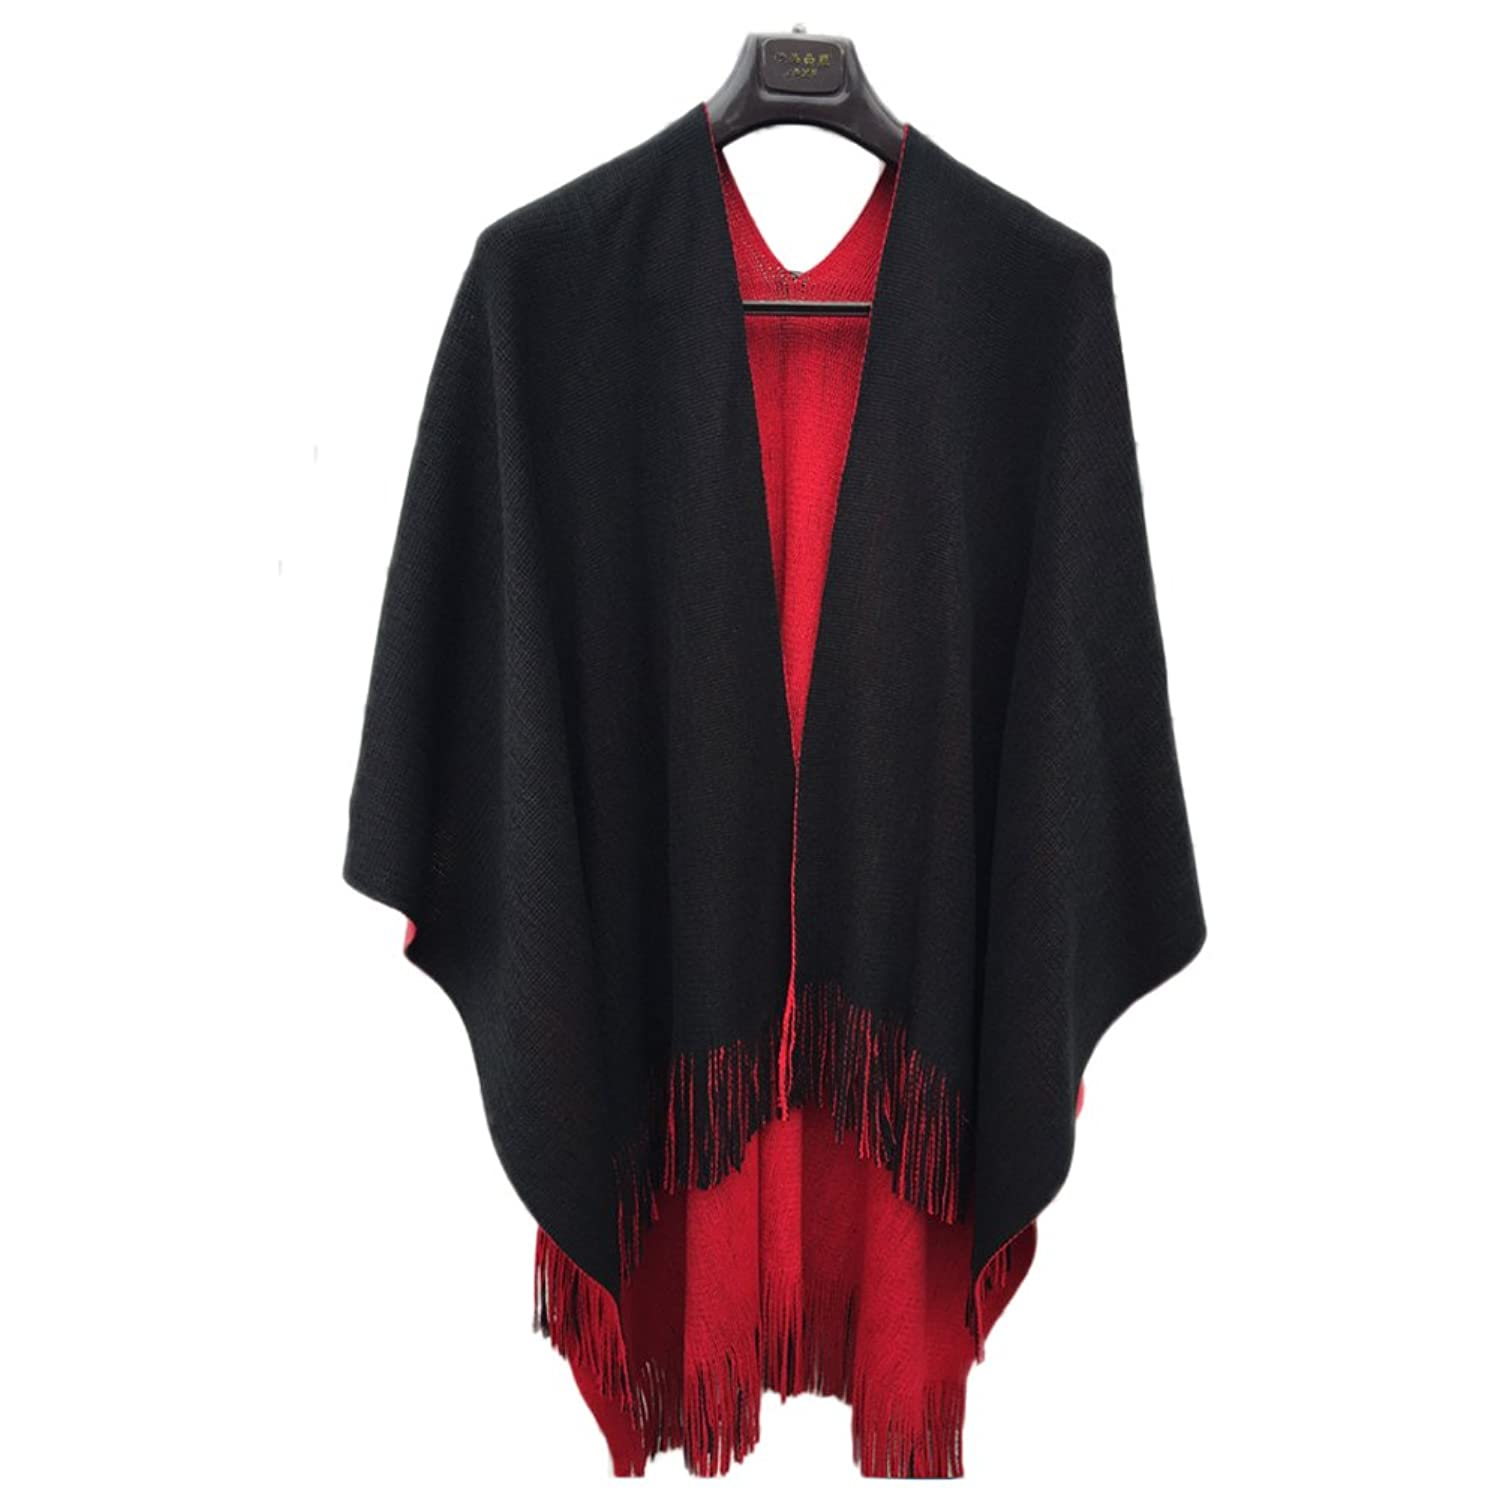 SZTARA Women Double-sided Scarf Cape Shawl Cloak with Tassel for Winter Autumn Spring Black and Red